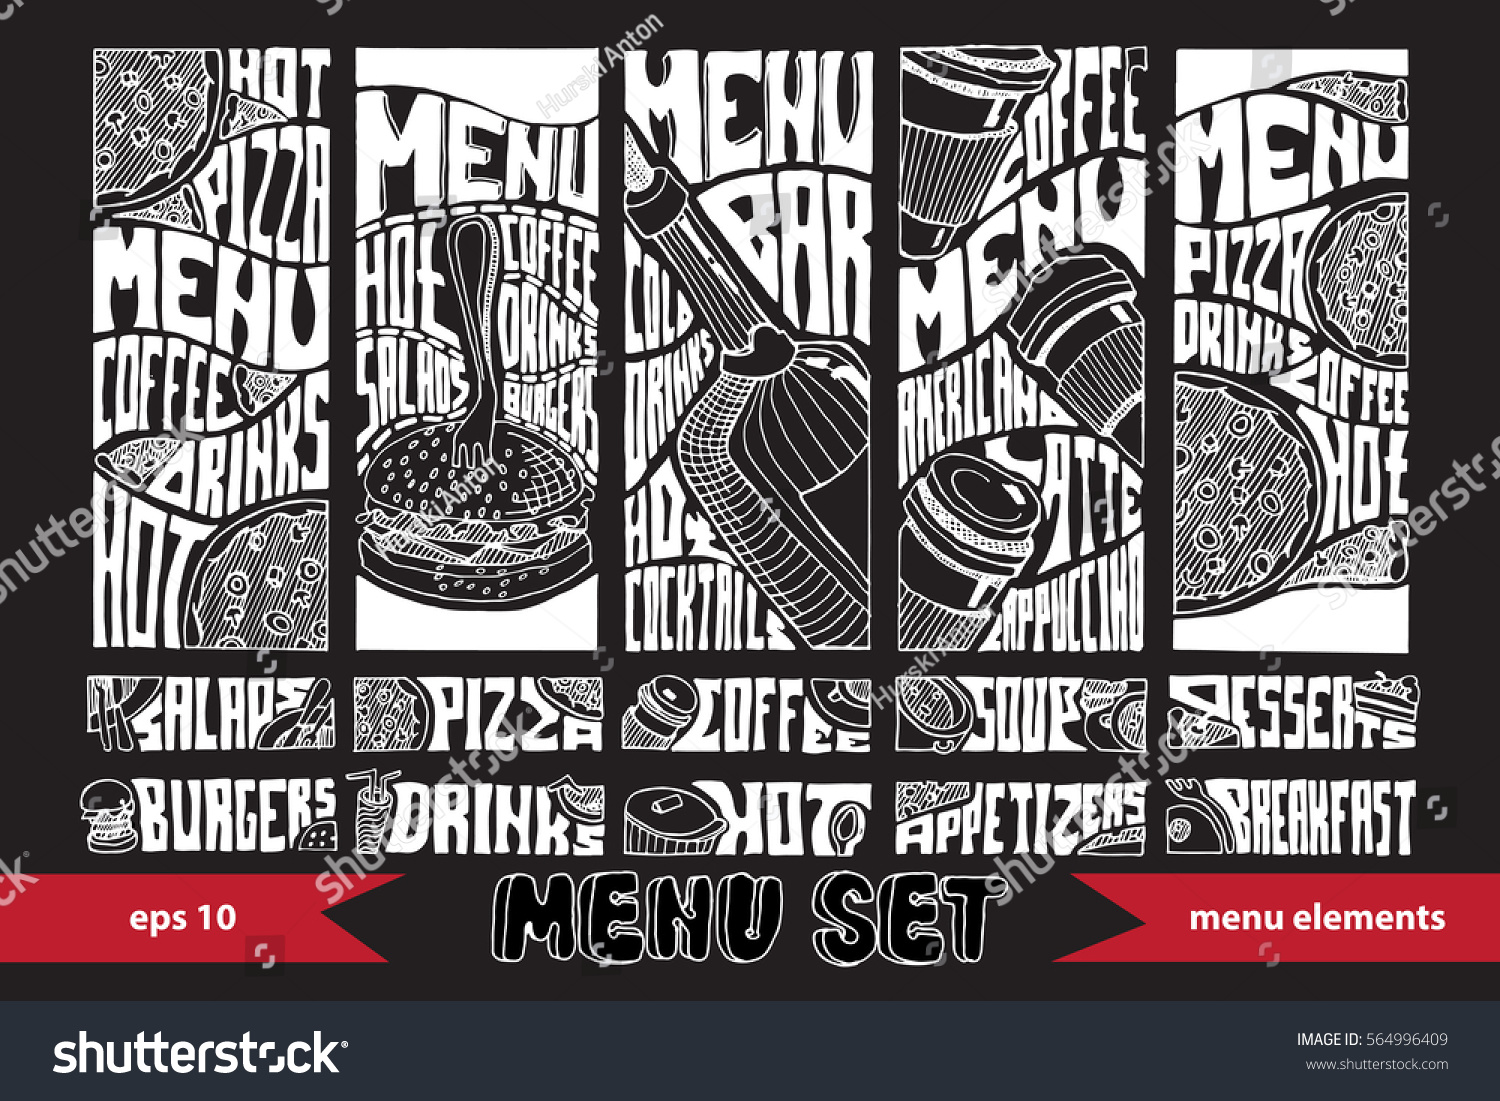 Restaurant menu design elements set stock vector